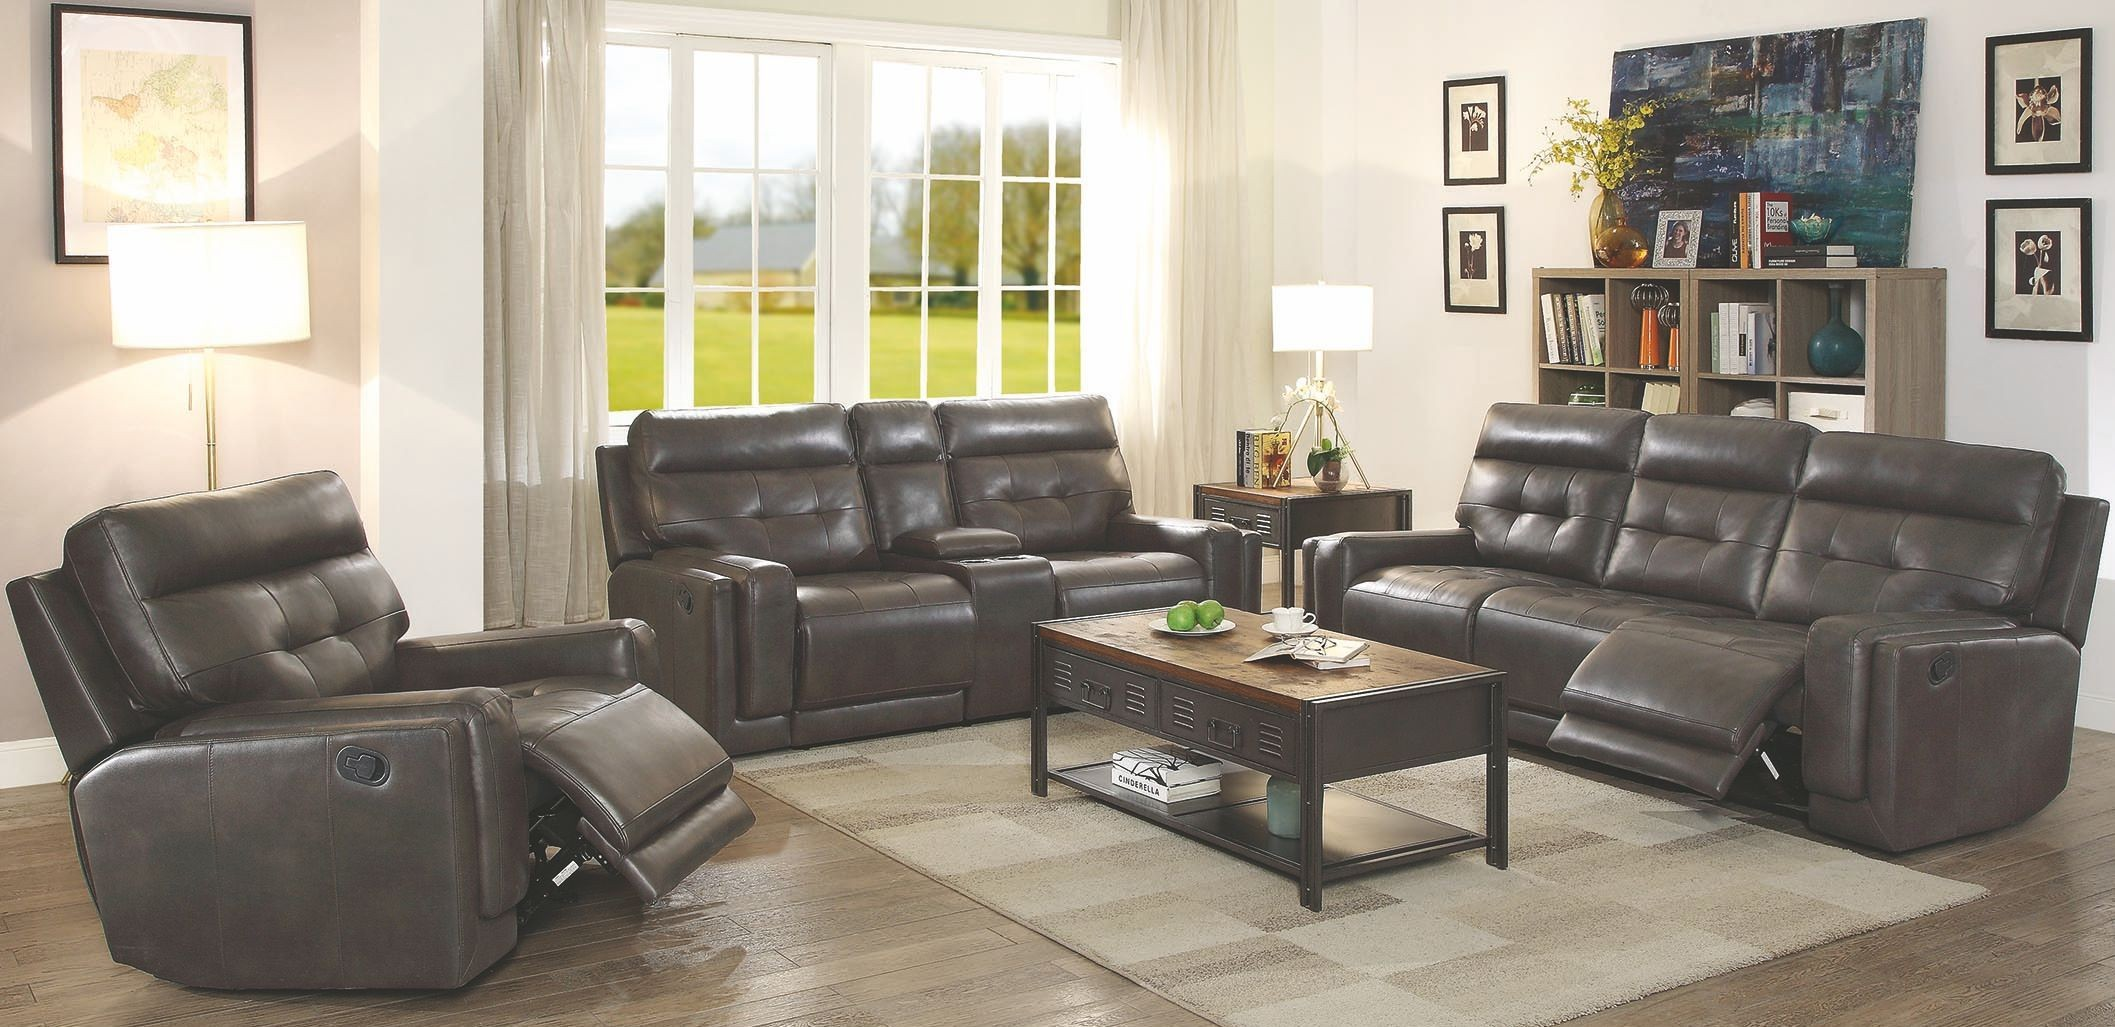 Trenton Motion Dark Grey Reclining Living Room Set From